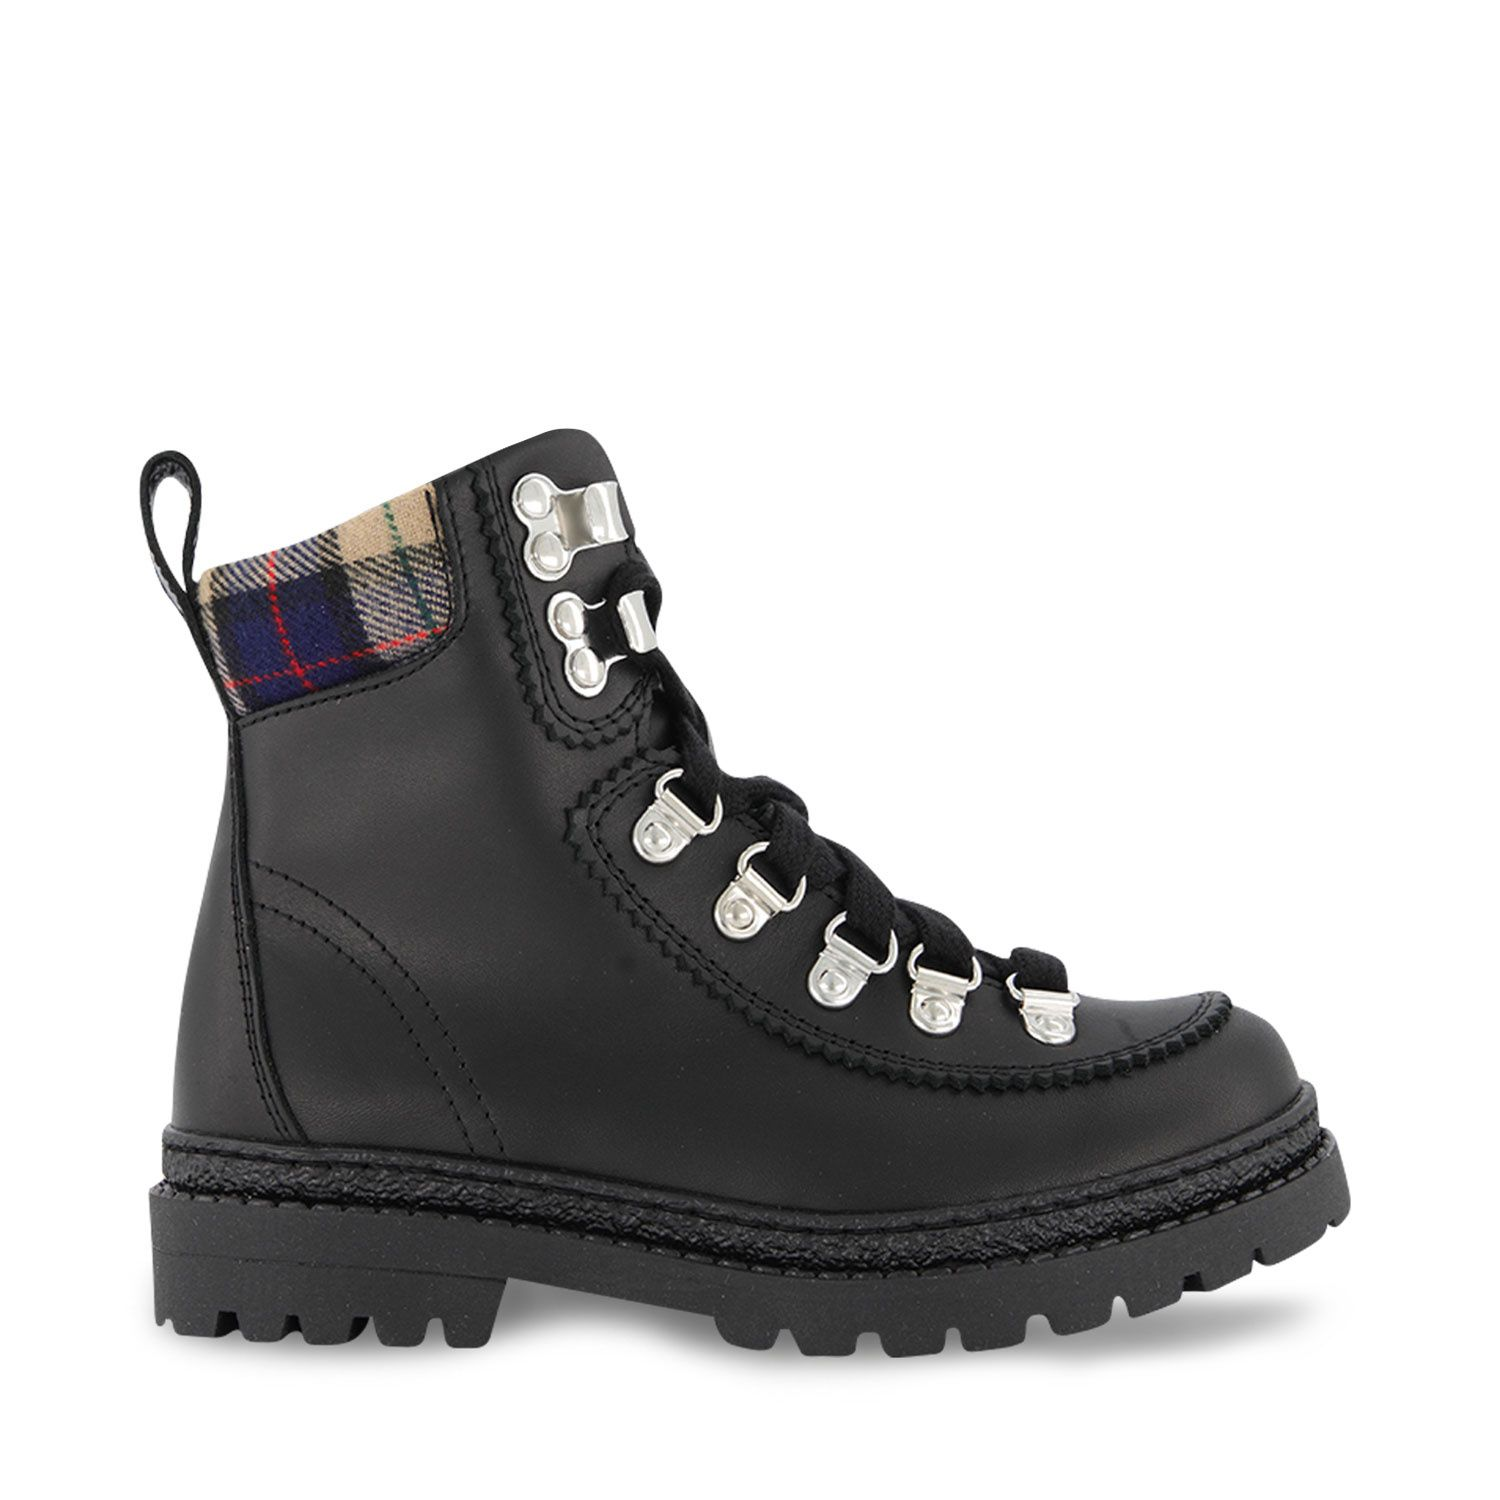 Picture of Dsquared2 65192 kids boots black